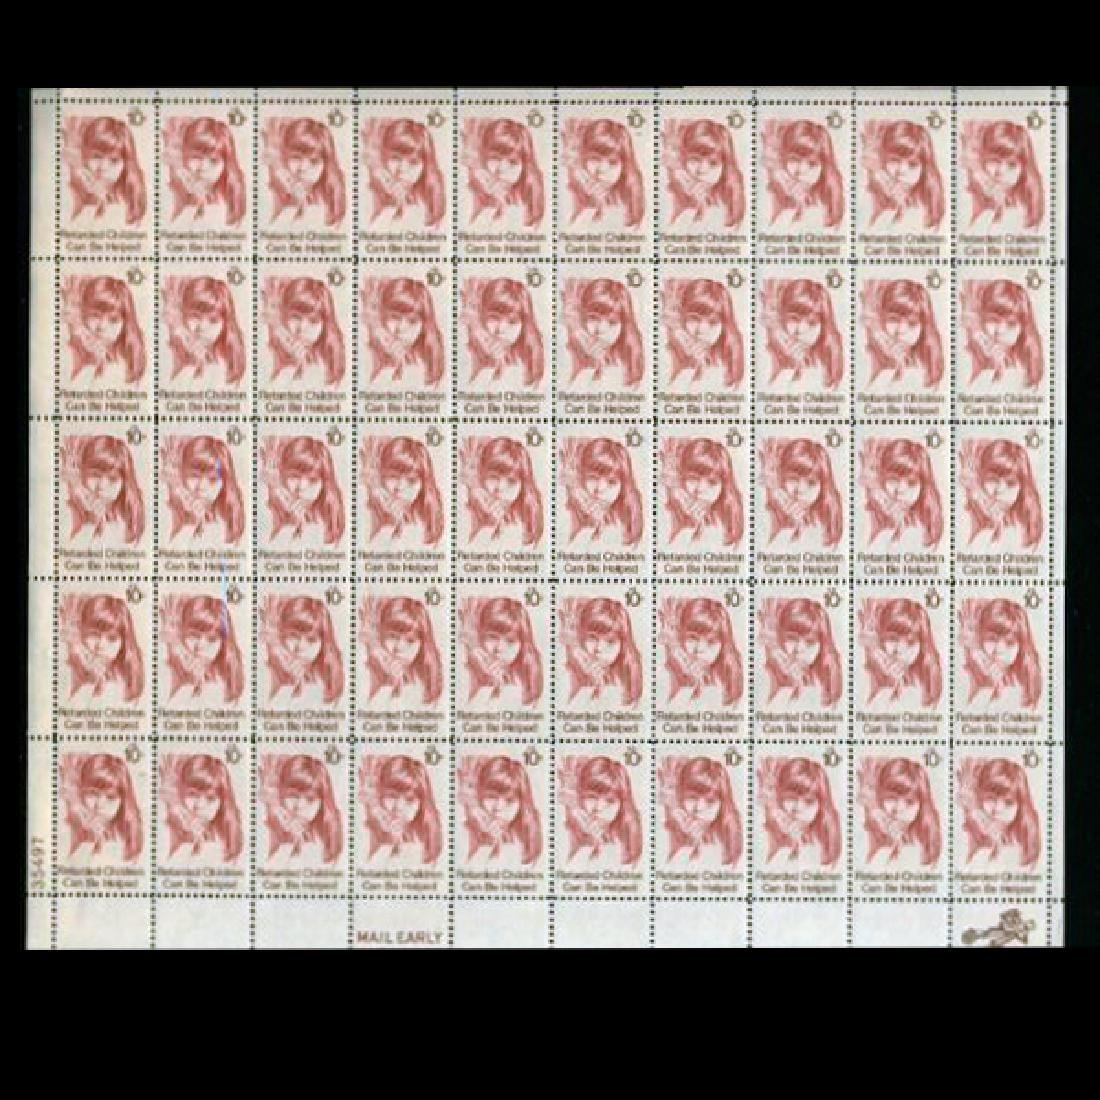 1974 US Sheet 10c Retarded Children Stamps MNH Error